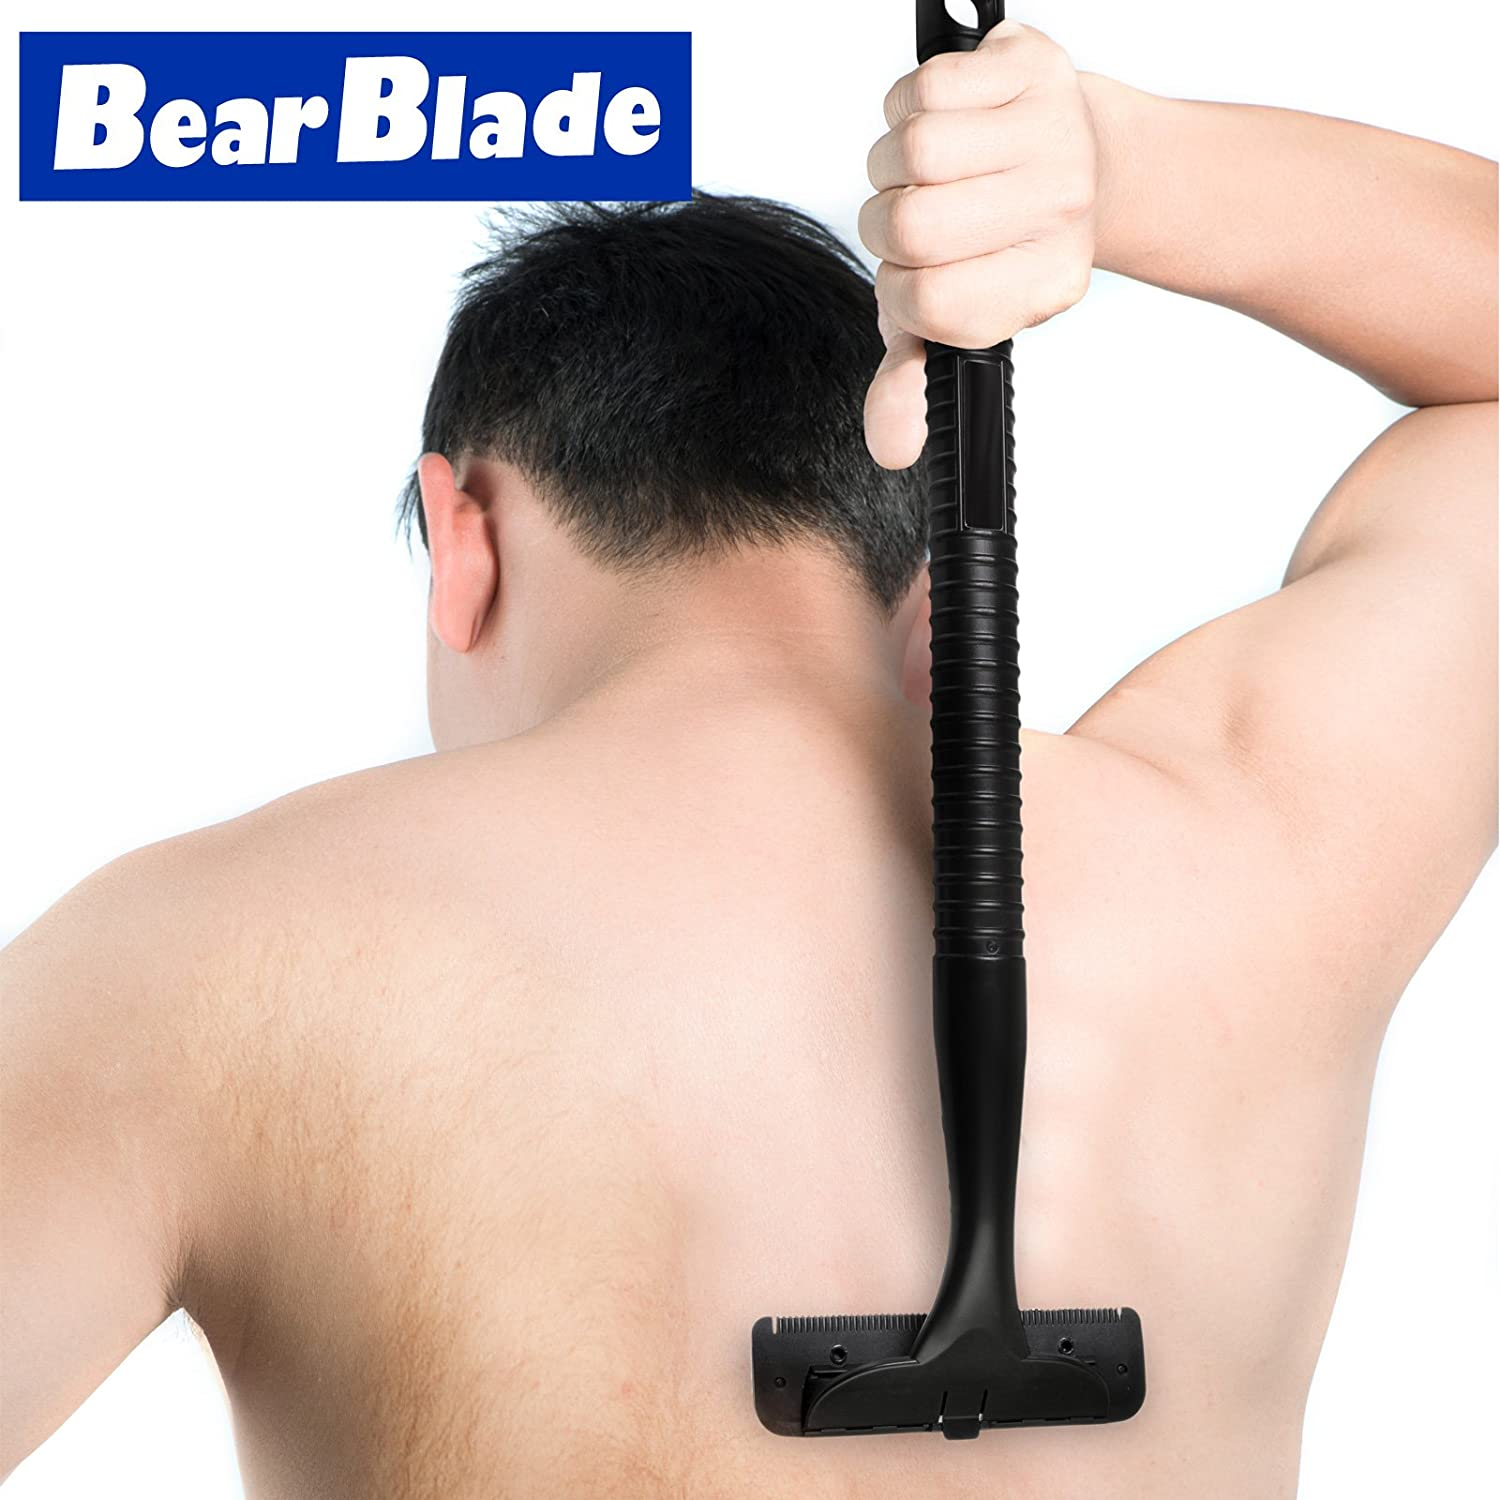 BearBlade Men's Easy to Use Back Razor/Shaver, Hair Remover Razor Hairy Backs BareBlade